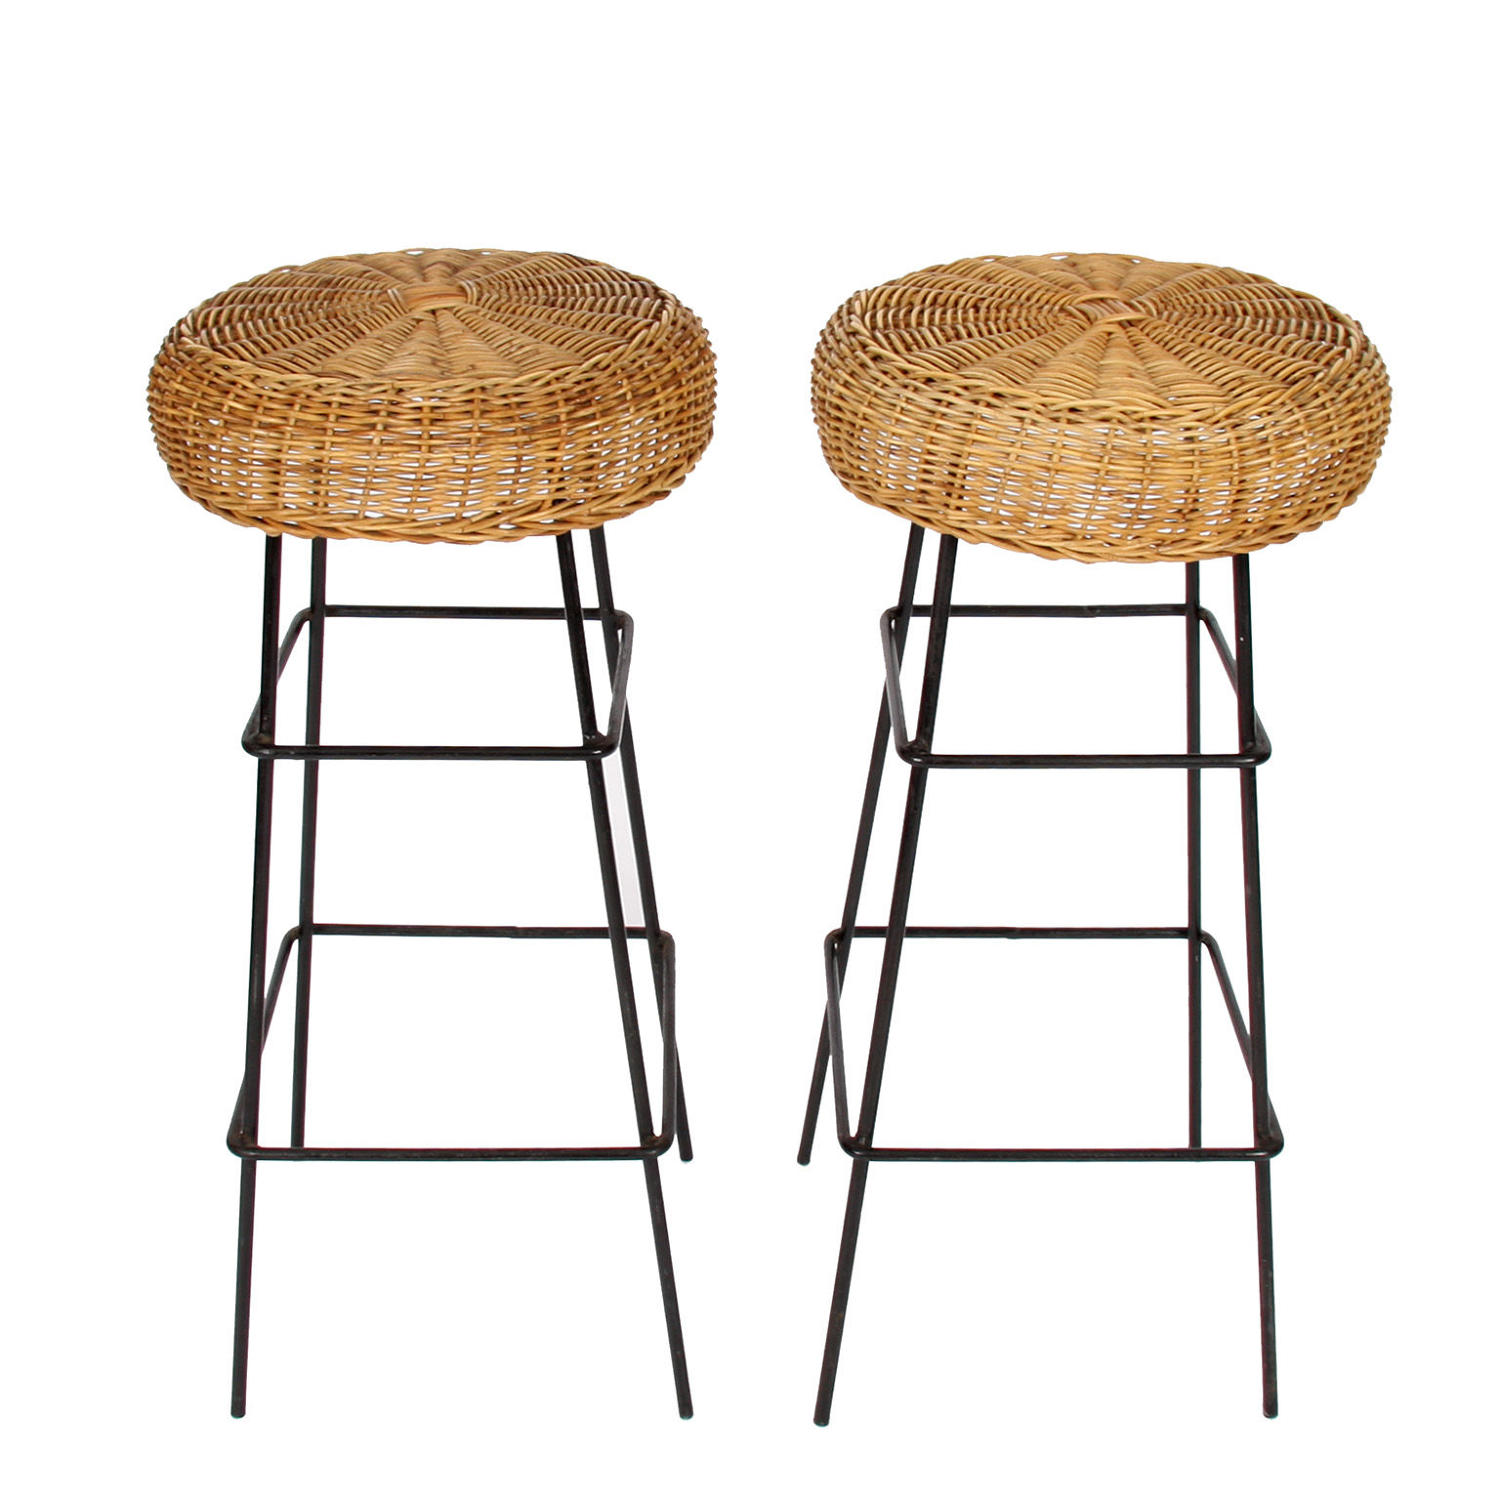 Pair of Wicker & Steel Stools